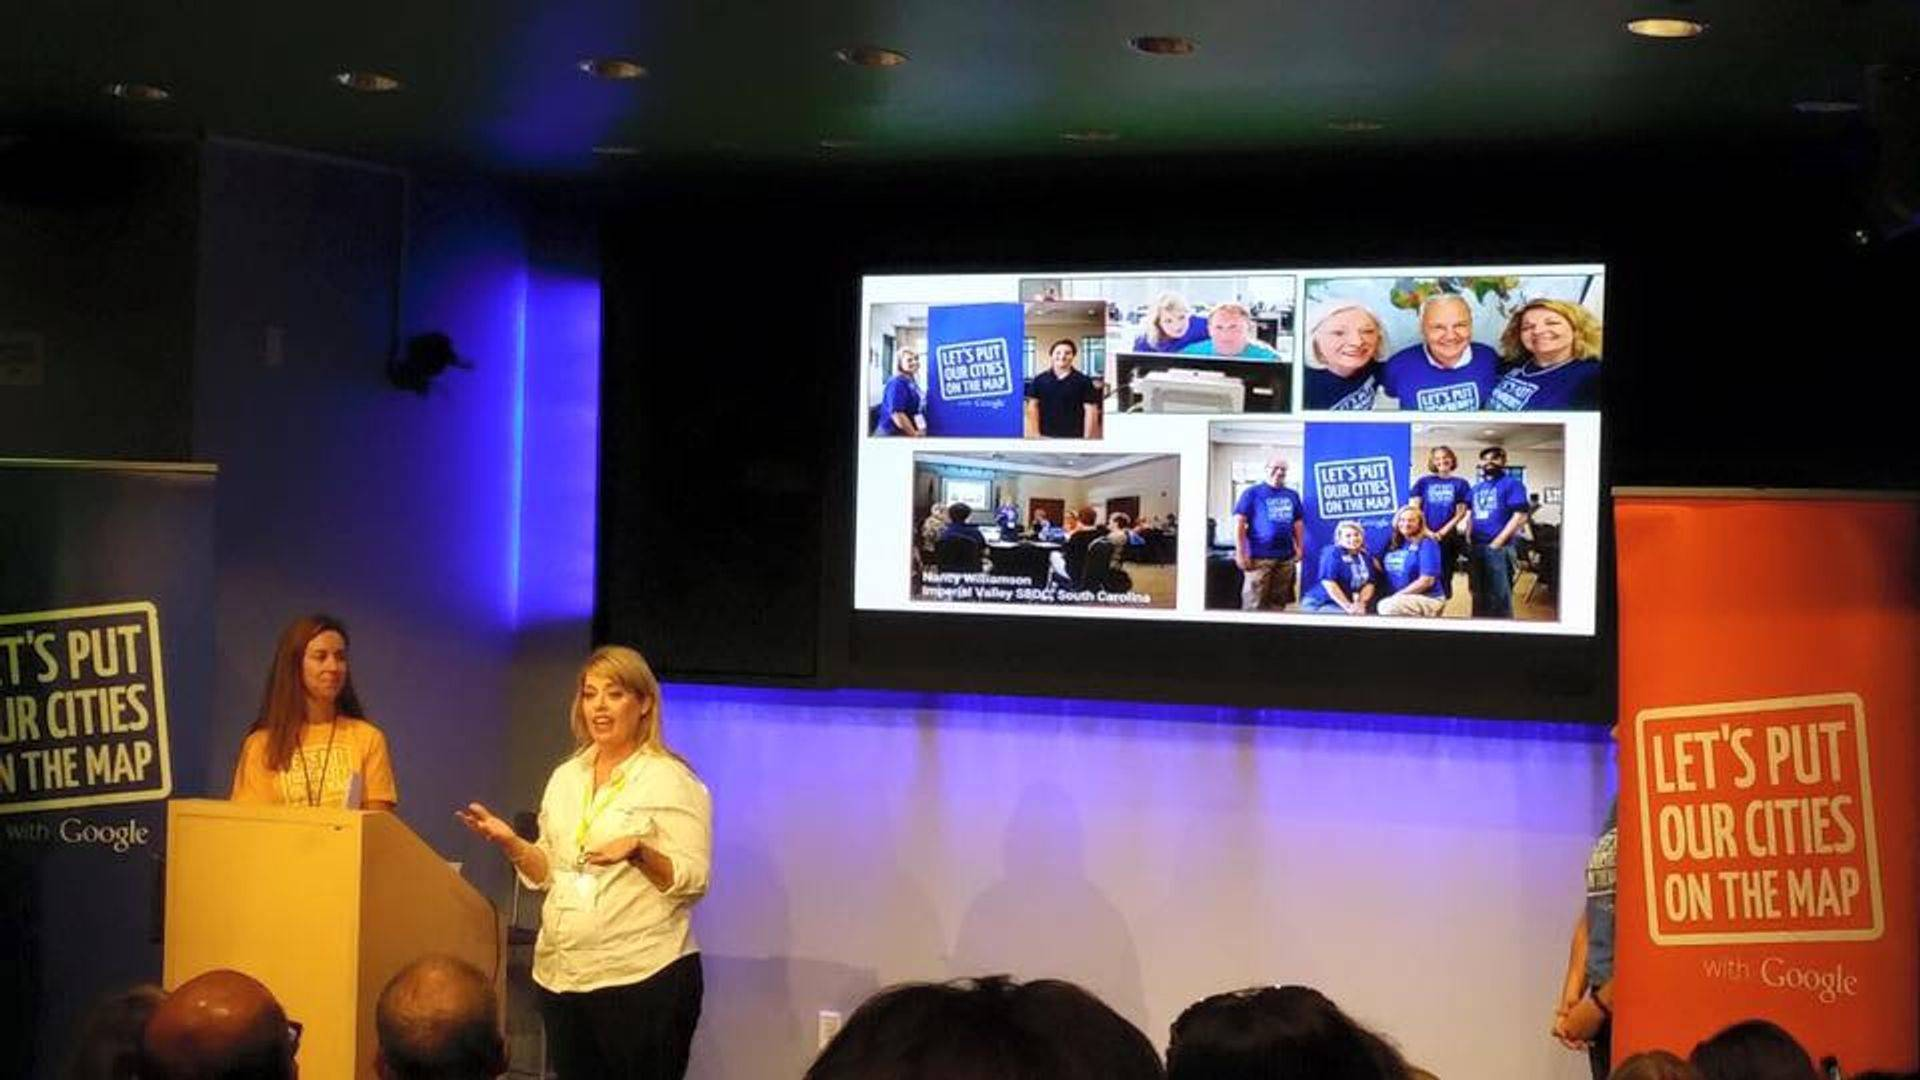 Nancy presenting at Google about Google Maps Listings